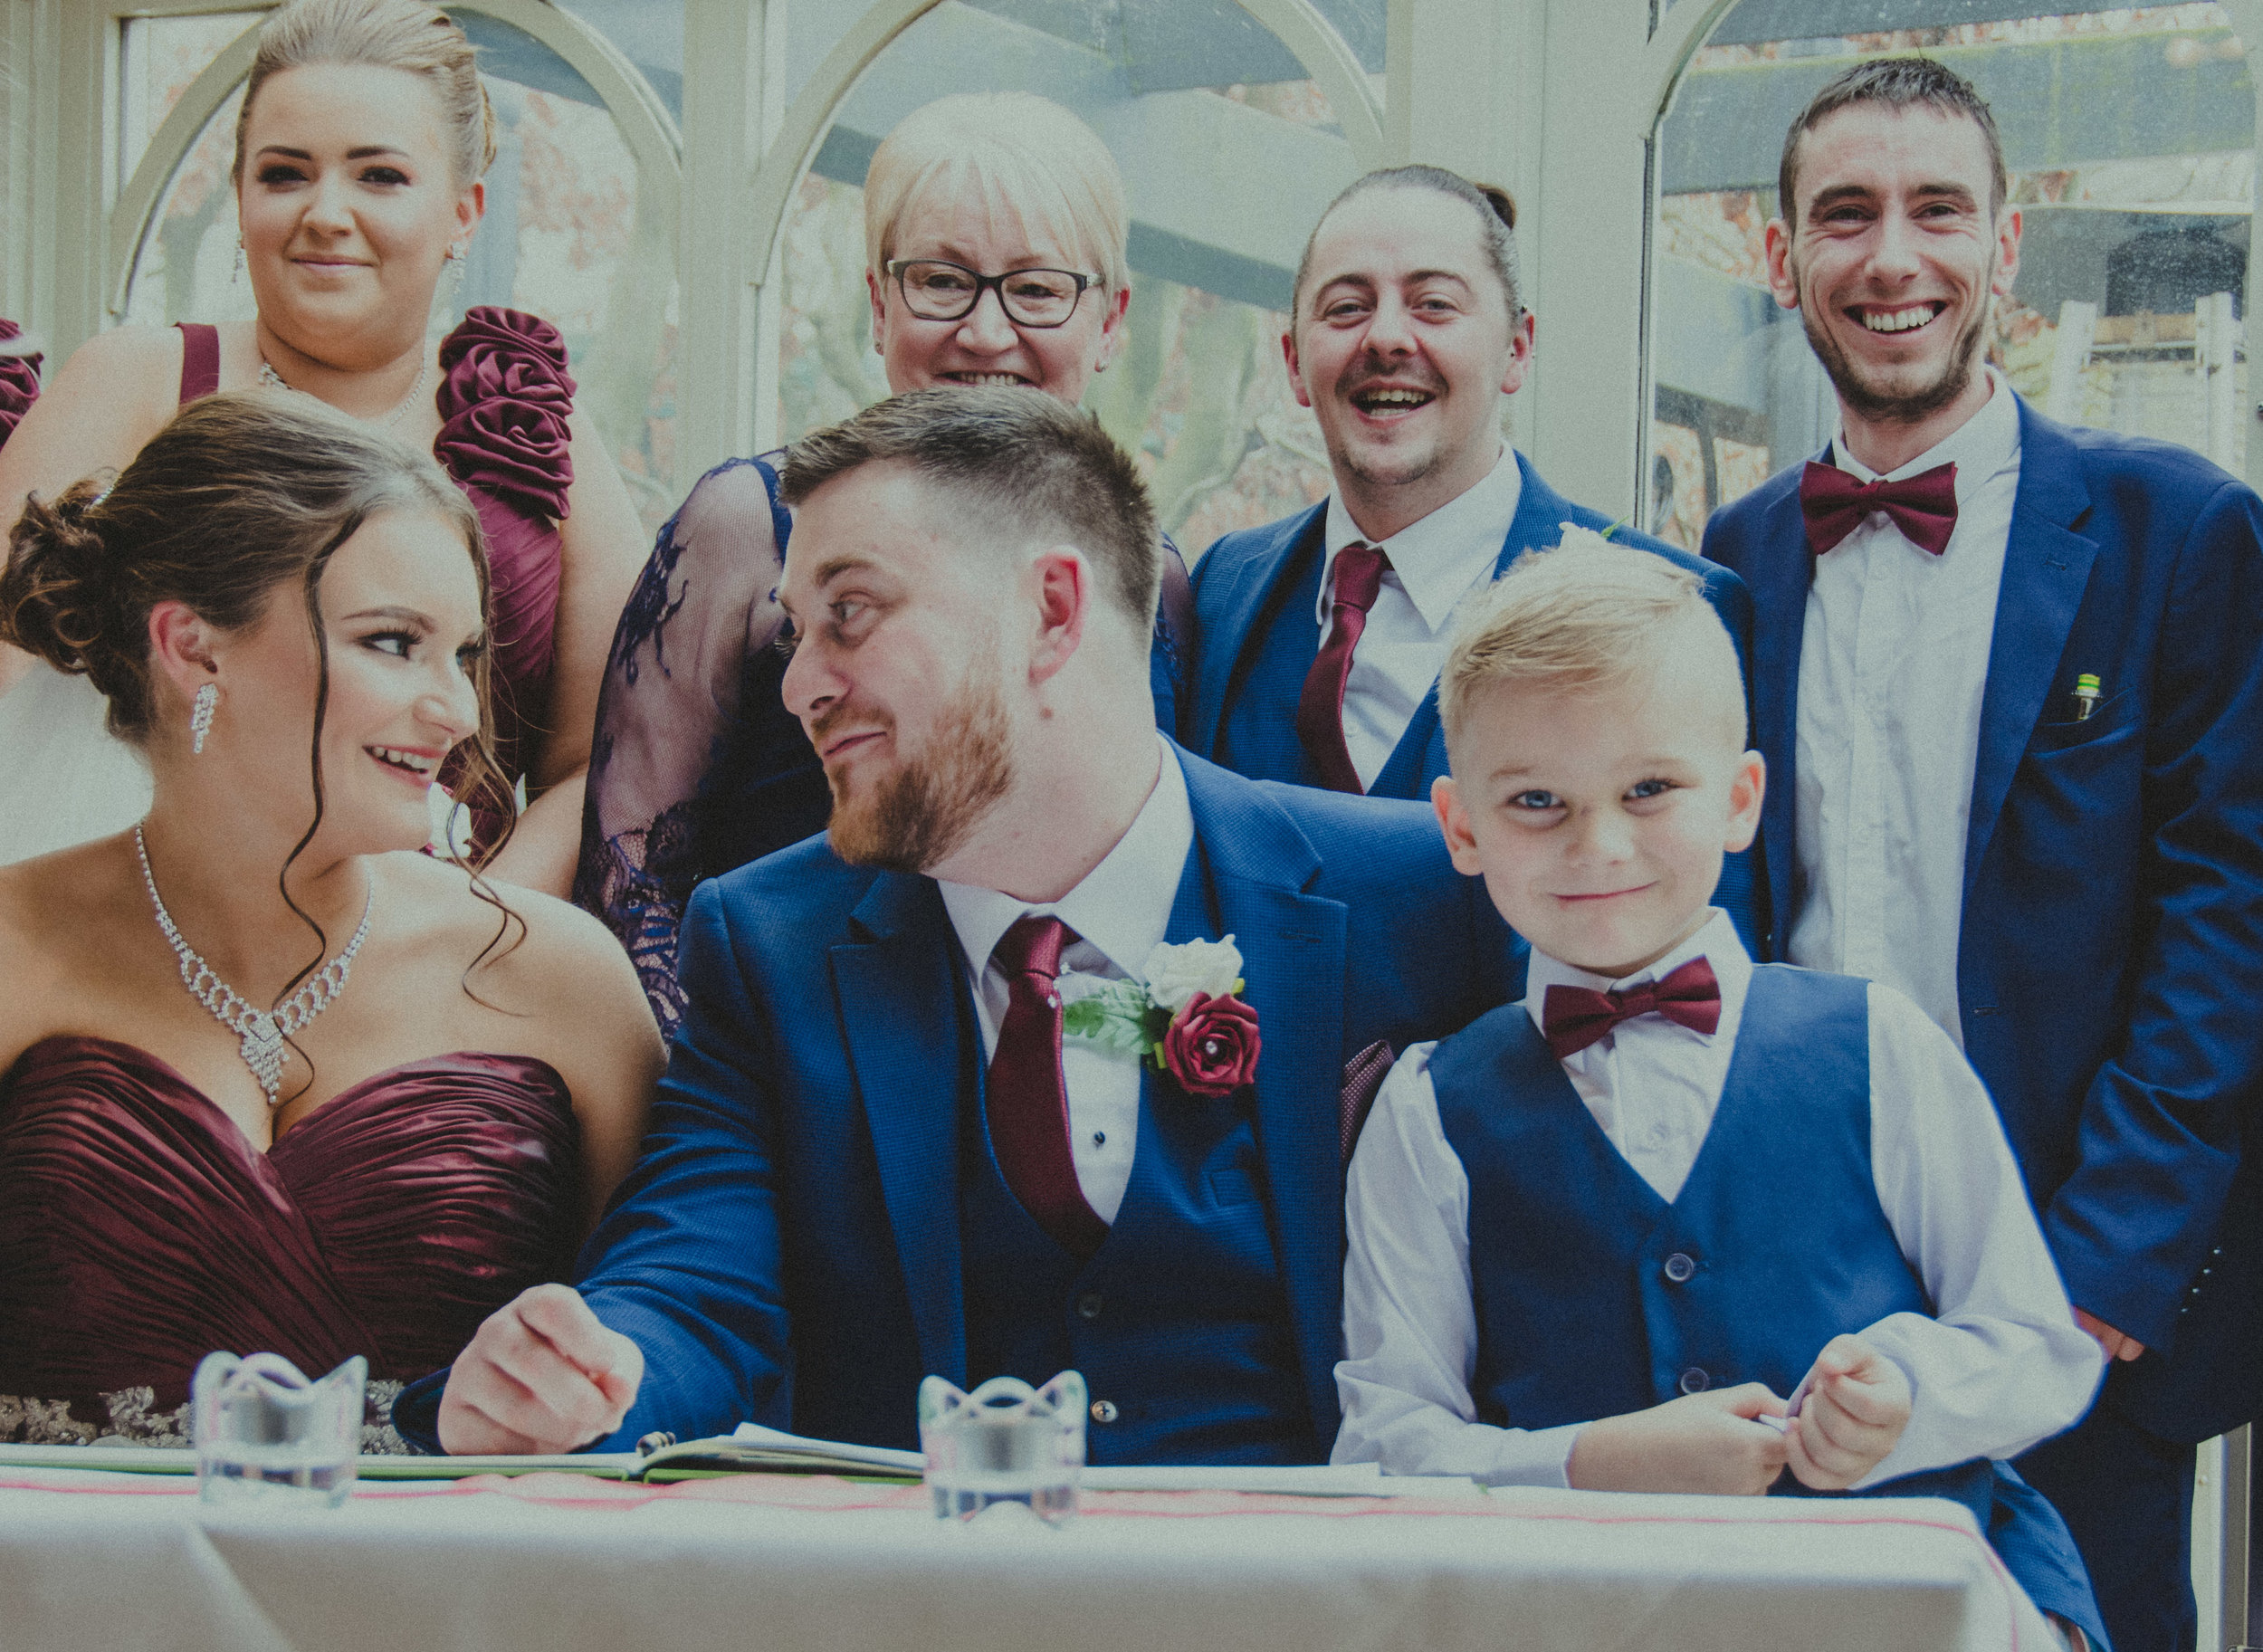 Cheshire wedding photographer knutford wedding photographer wedding photographer shropshire wedding photographer rustic wedding photographer award winning wedding photographer (1 of 1).jpg